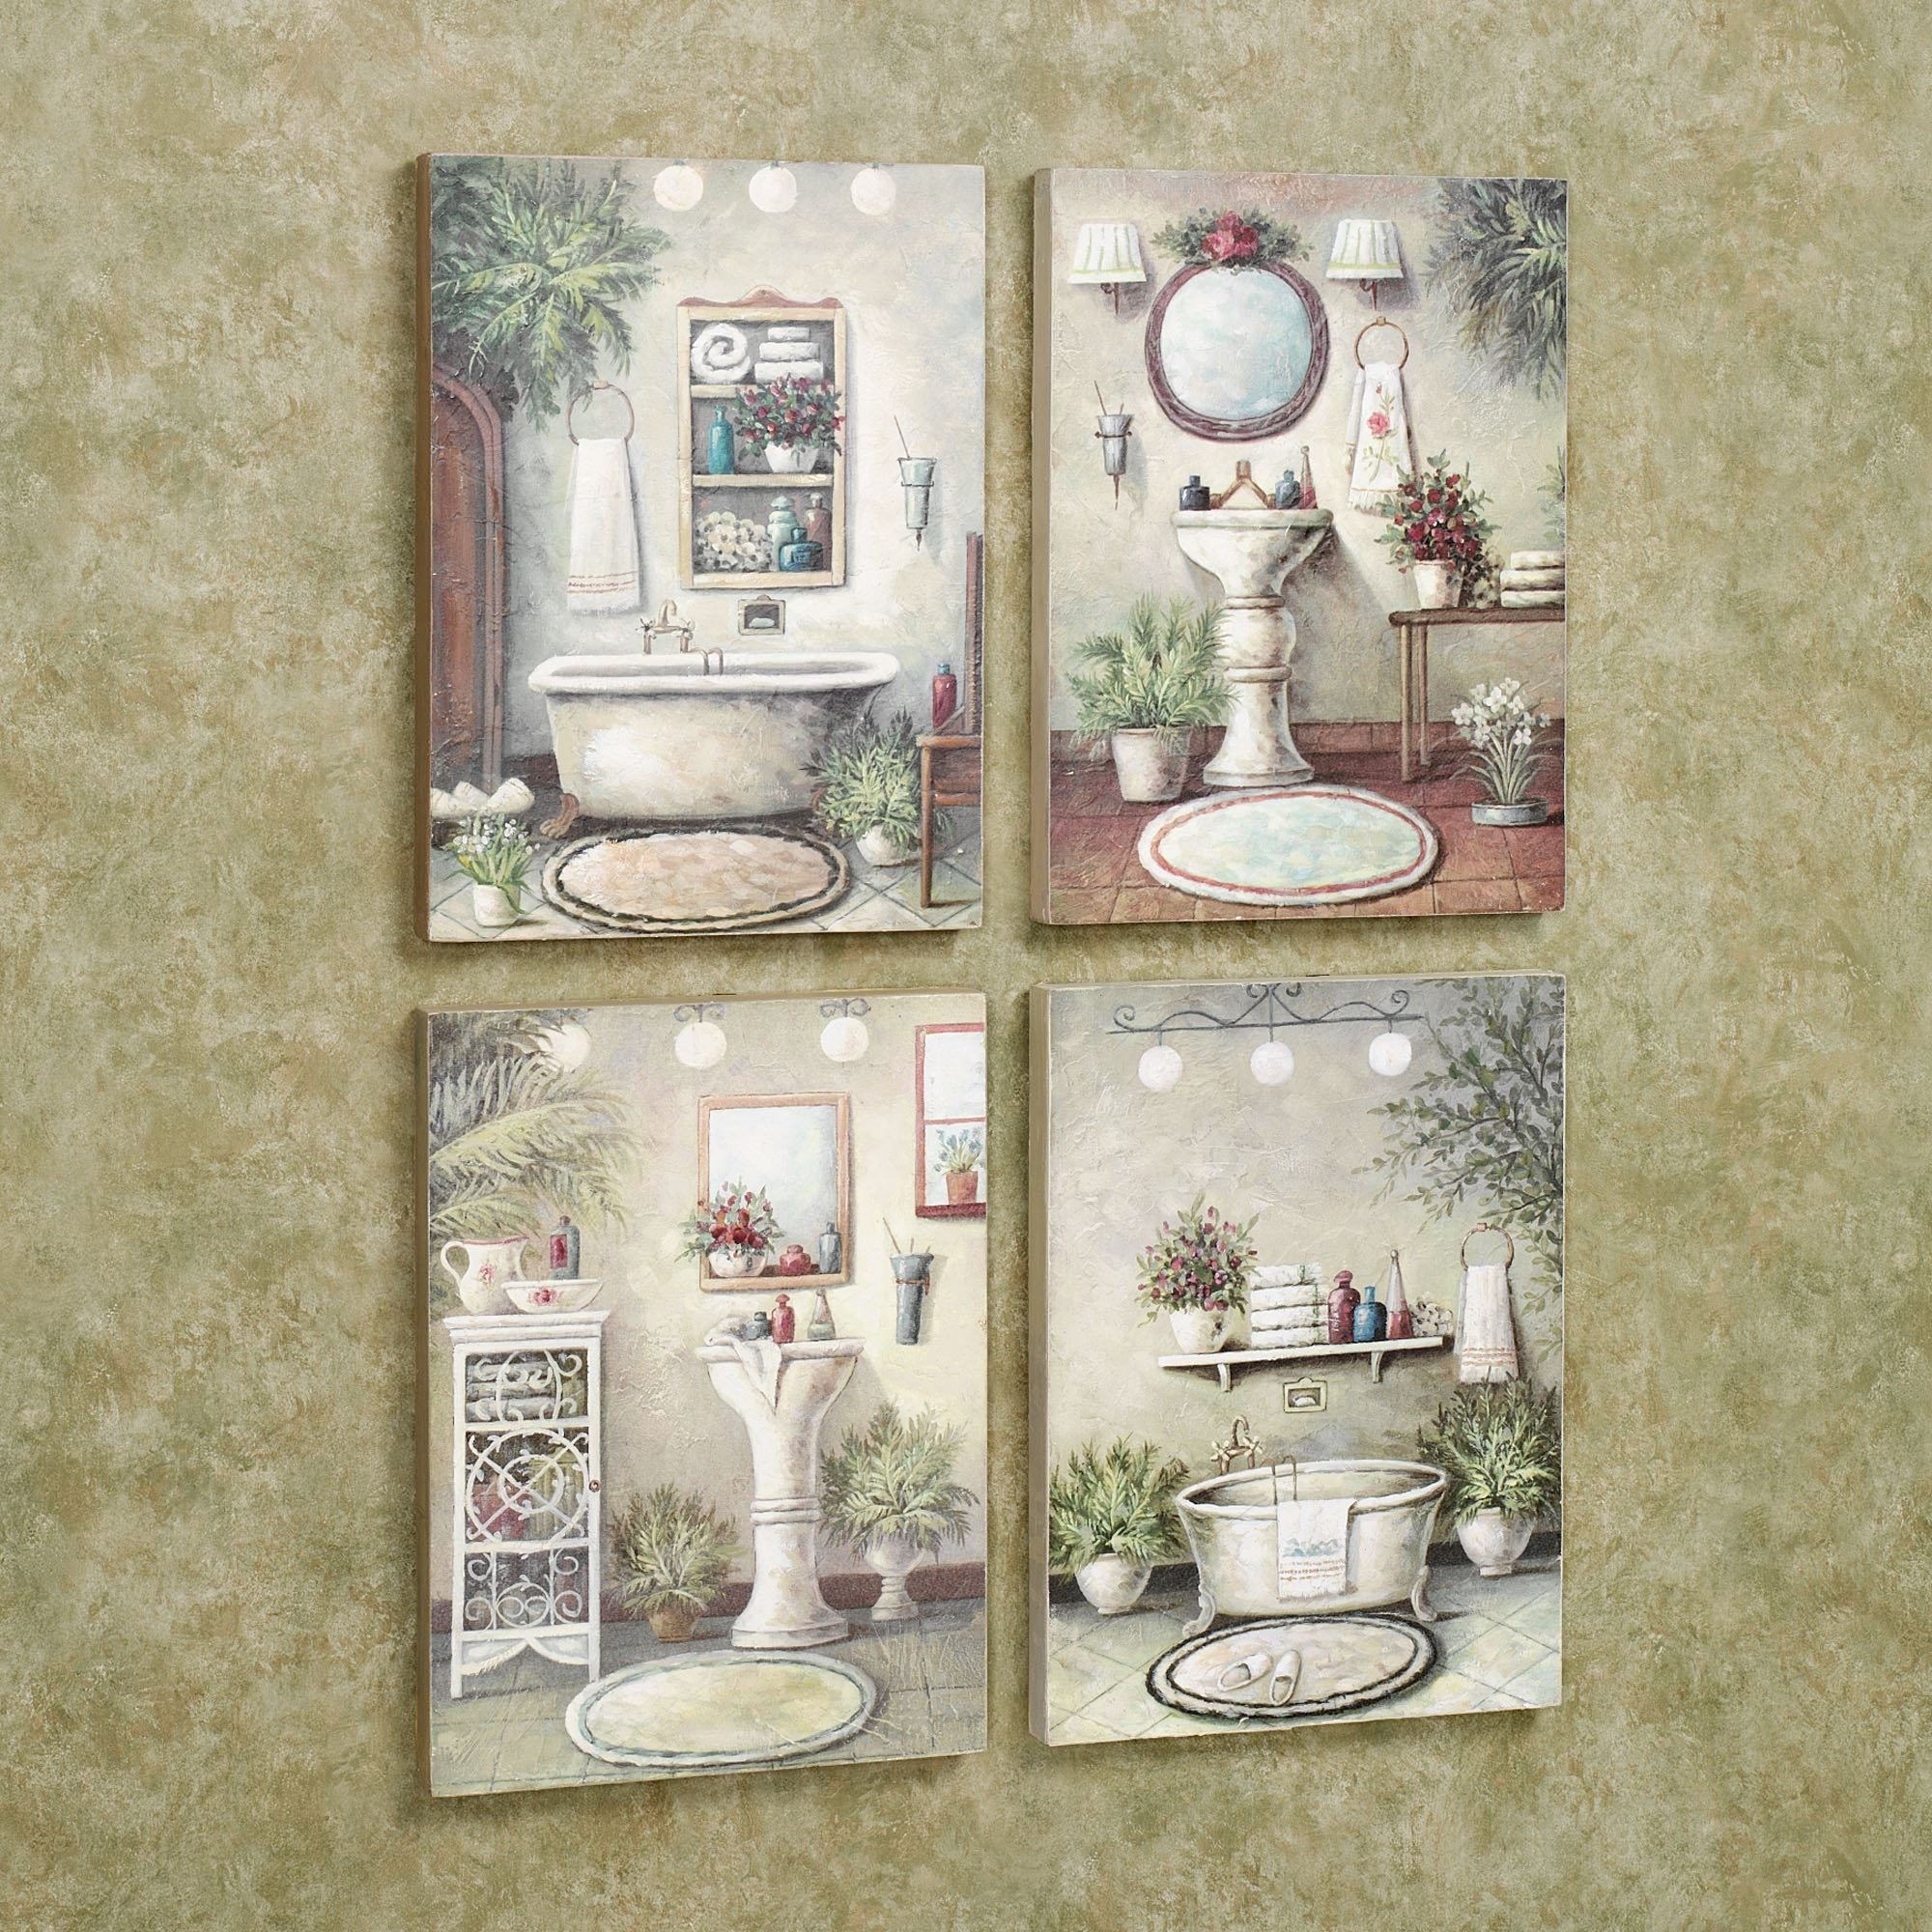 Wall Art for Bathroom Decor Lovely Bathroom Bliss Wooden Wall Art Plaque Set